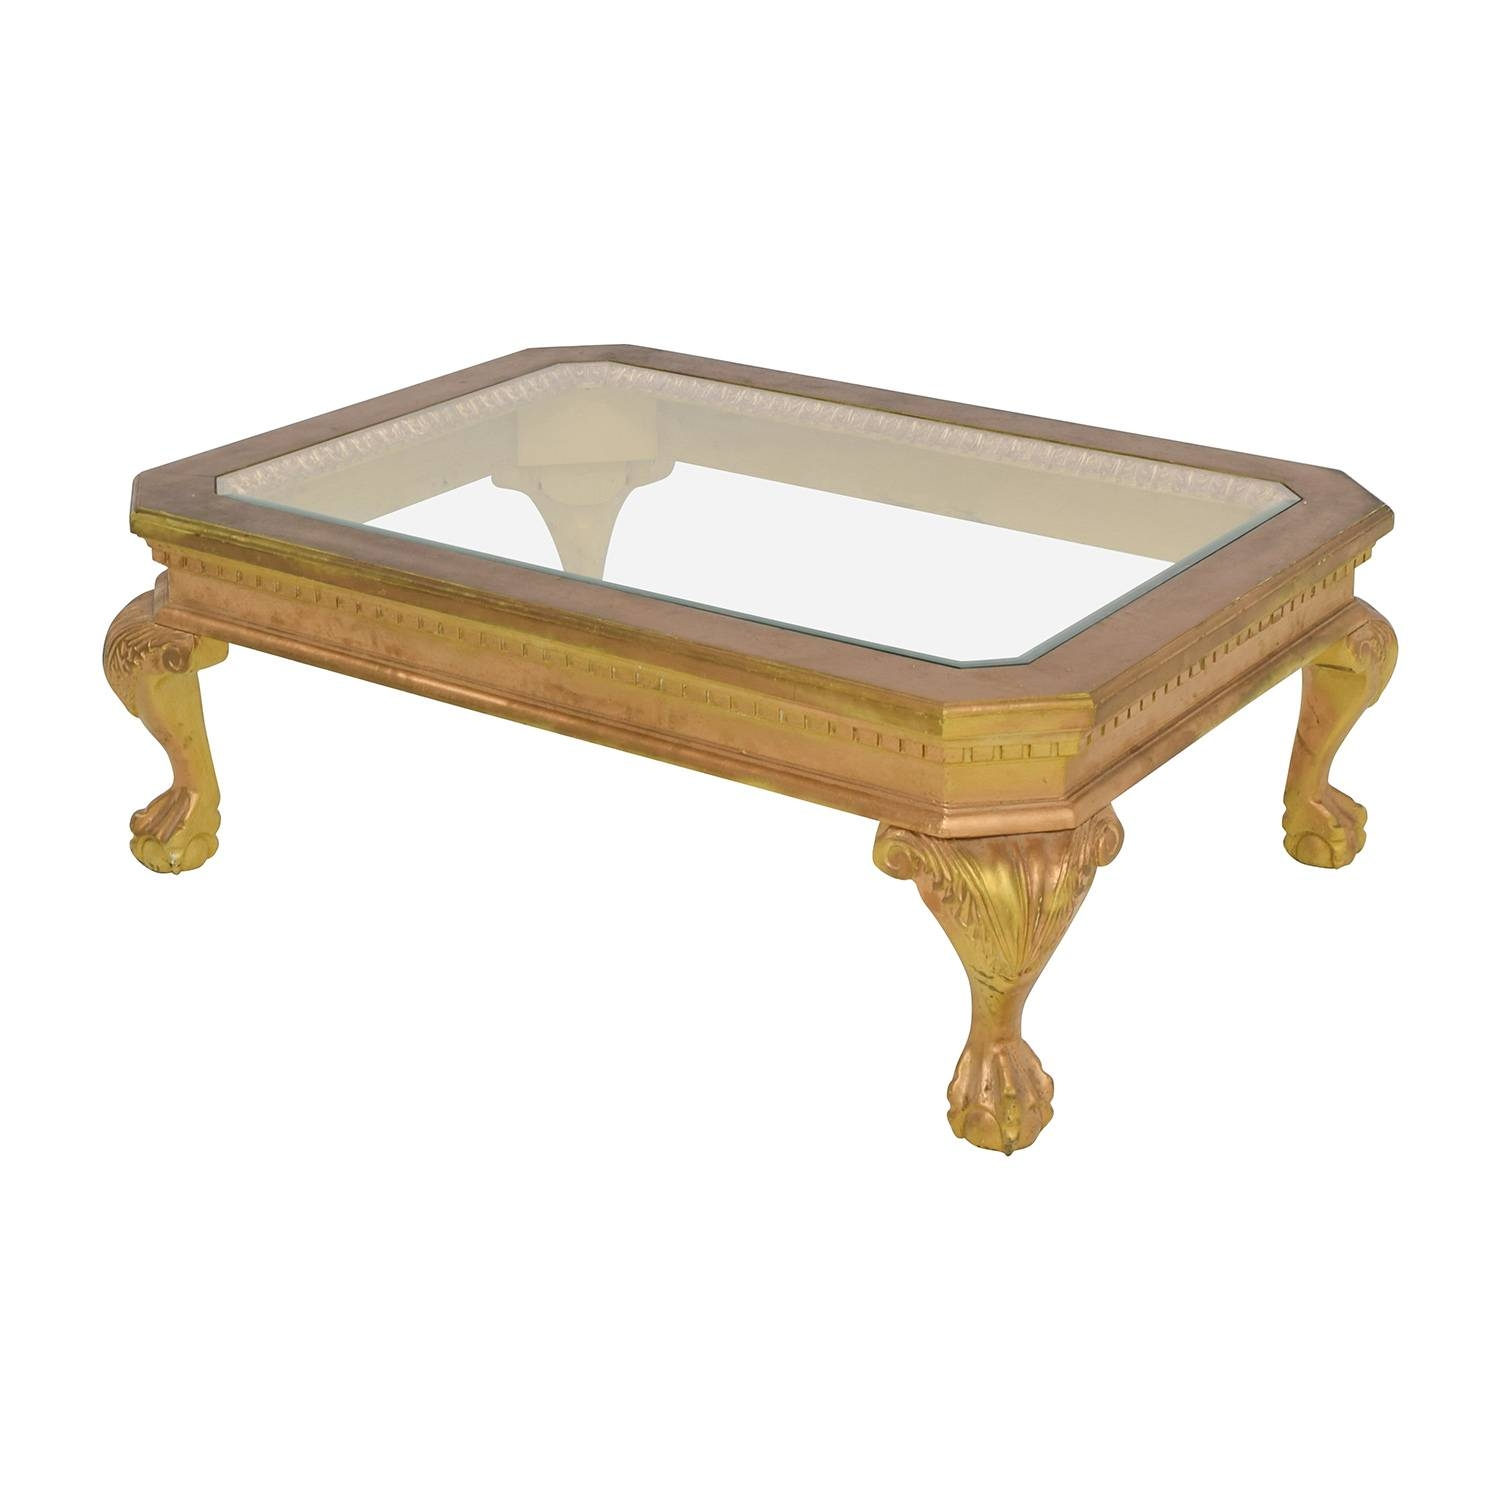 75% Off - Distressed Wood Antique Gold And Glass Coffee Table / Tables in Antique Glass Coffee Tables (Image 1 of 30)